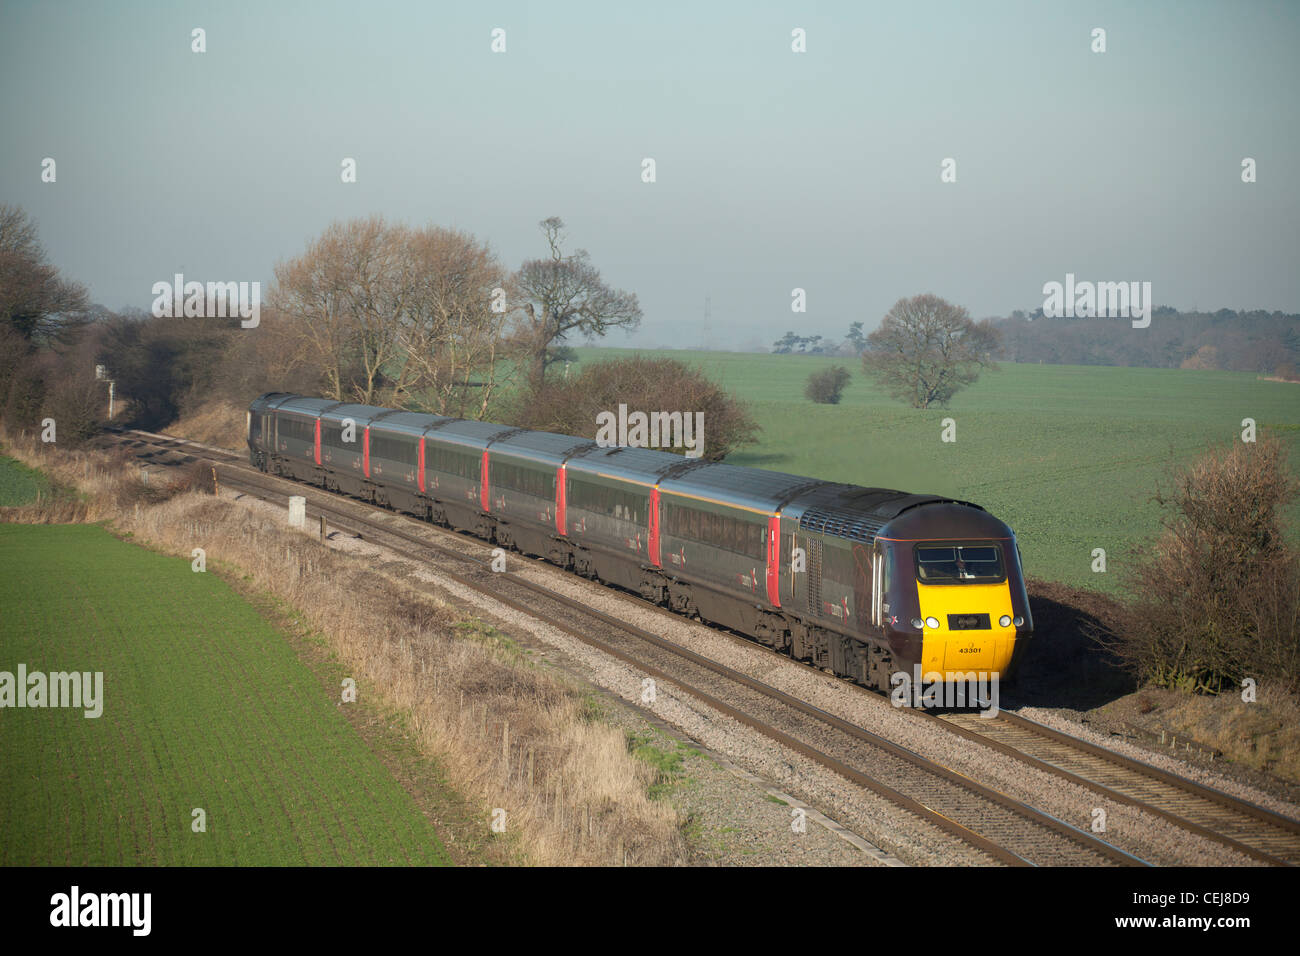 Cross Country Trains High speed train, Portway, Tamworth, Staffordshire. - Stock Image